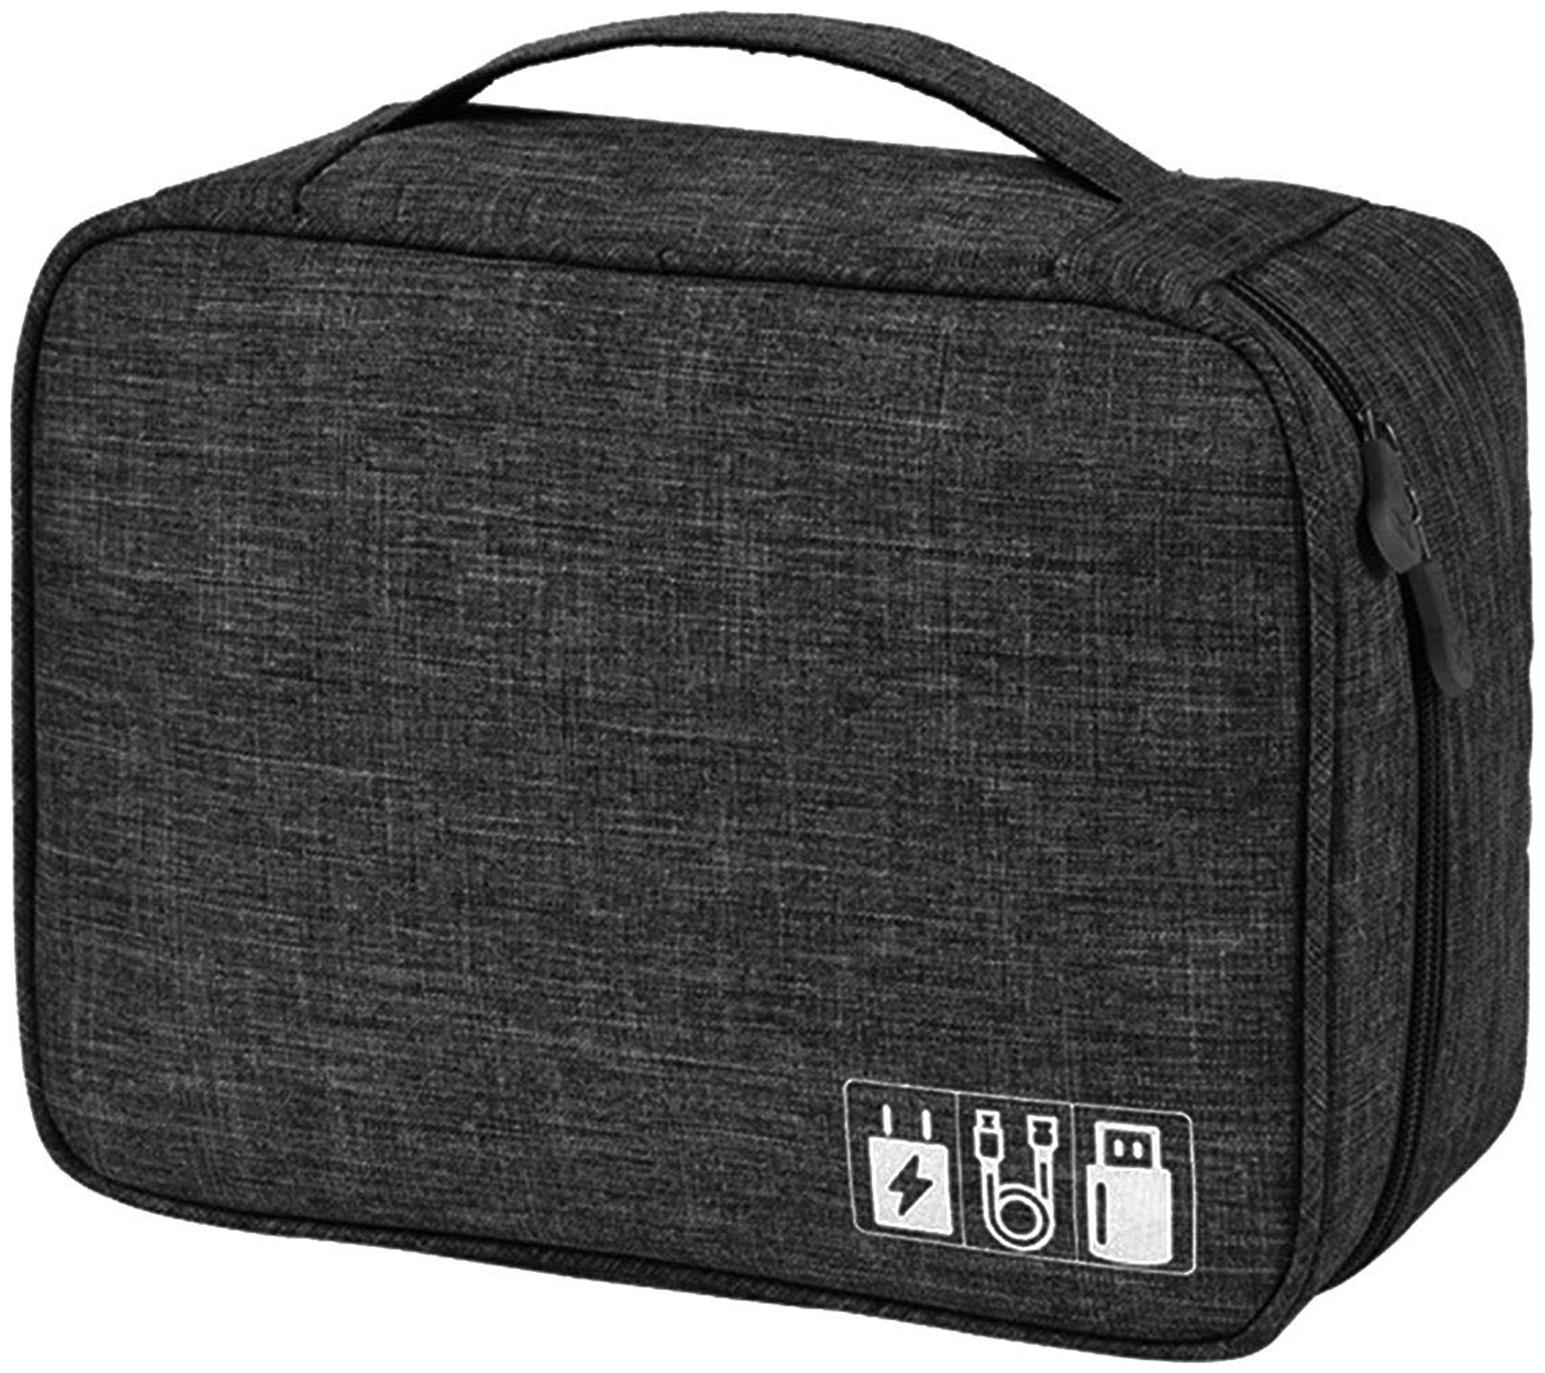 House of Quirk Electronics Accessories Organizer Bag